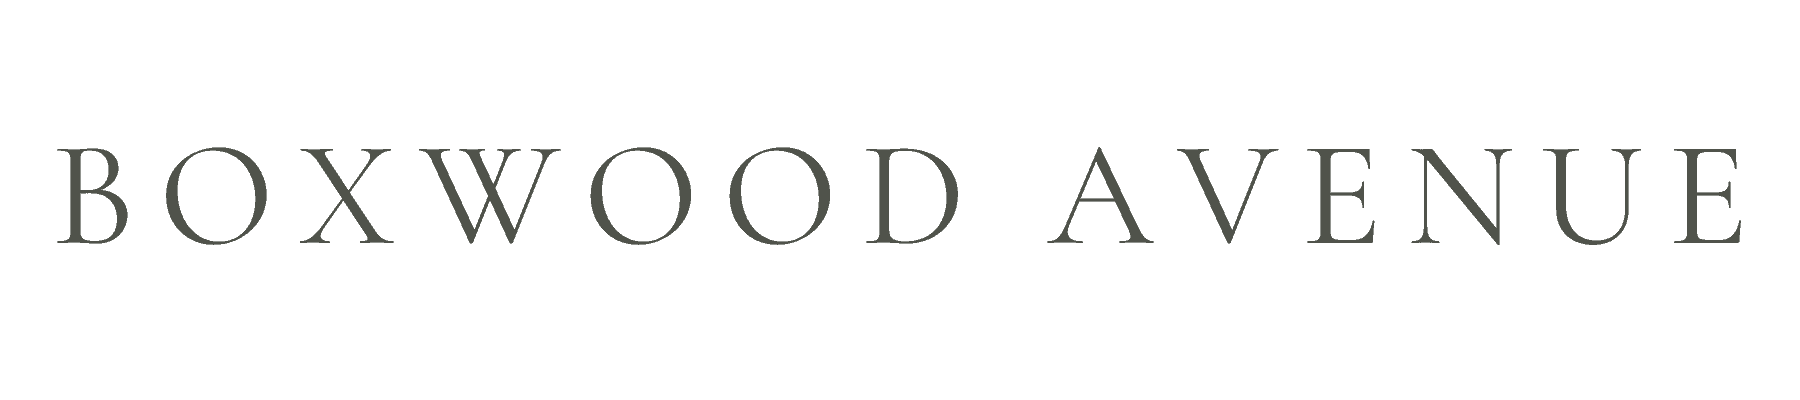 Boxwood Avenue Main Logo